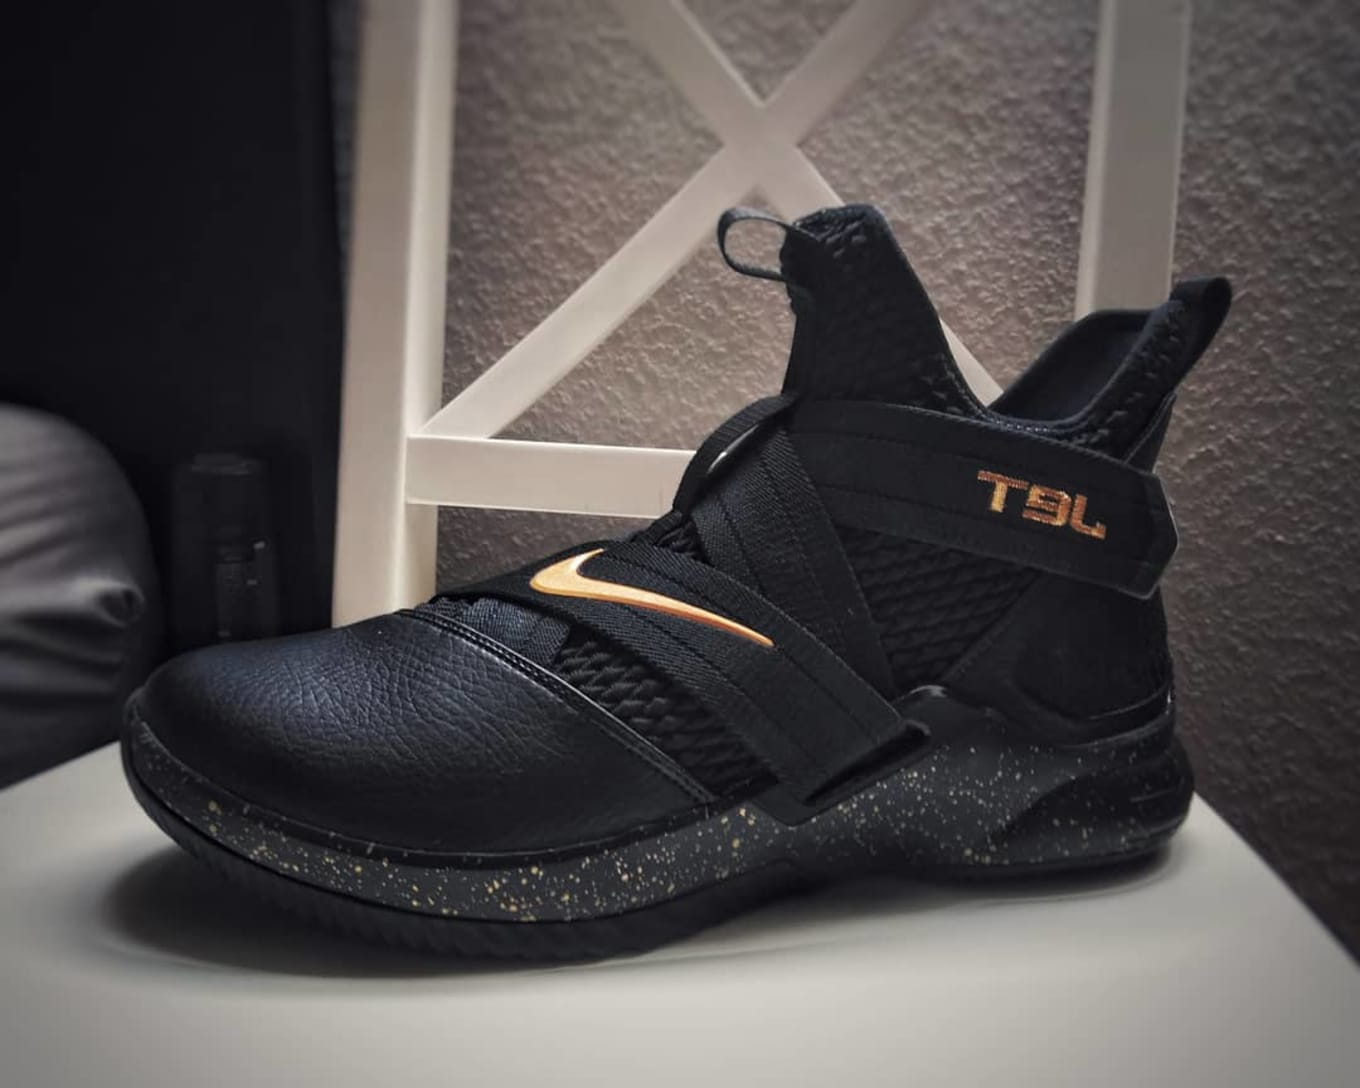 best sneakers 1d539 abccb NIKEiD LeBron Soldier 12 Designs | Sole Collector